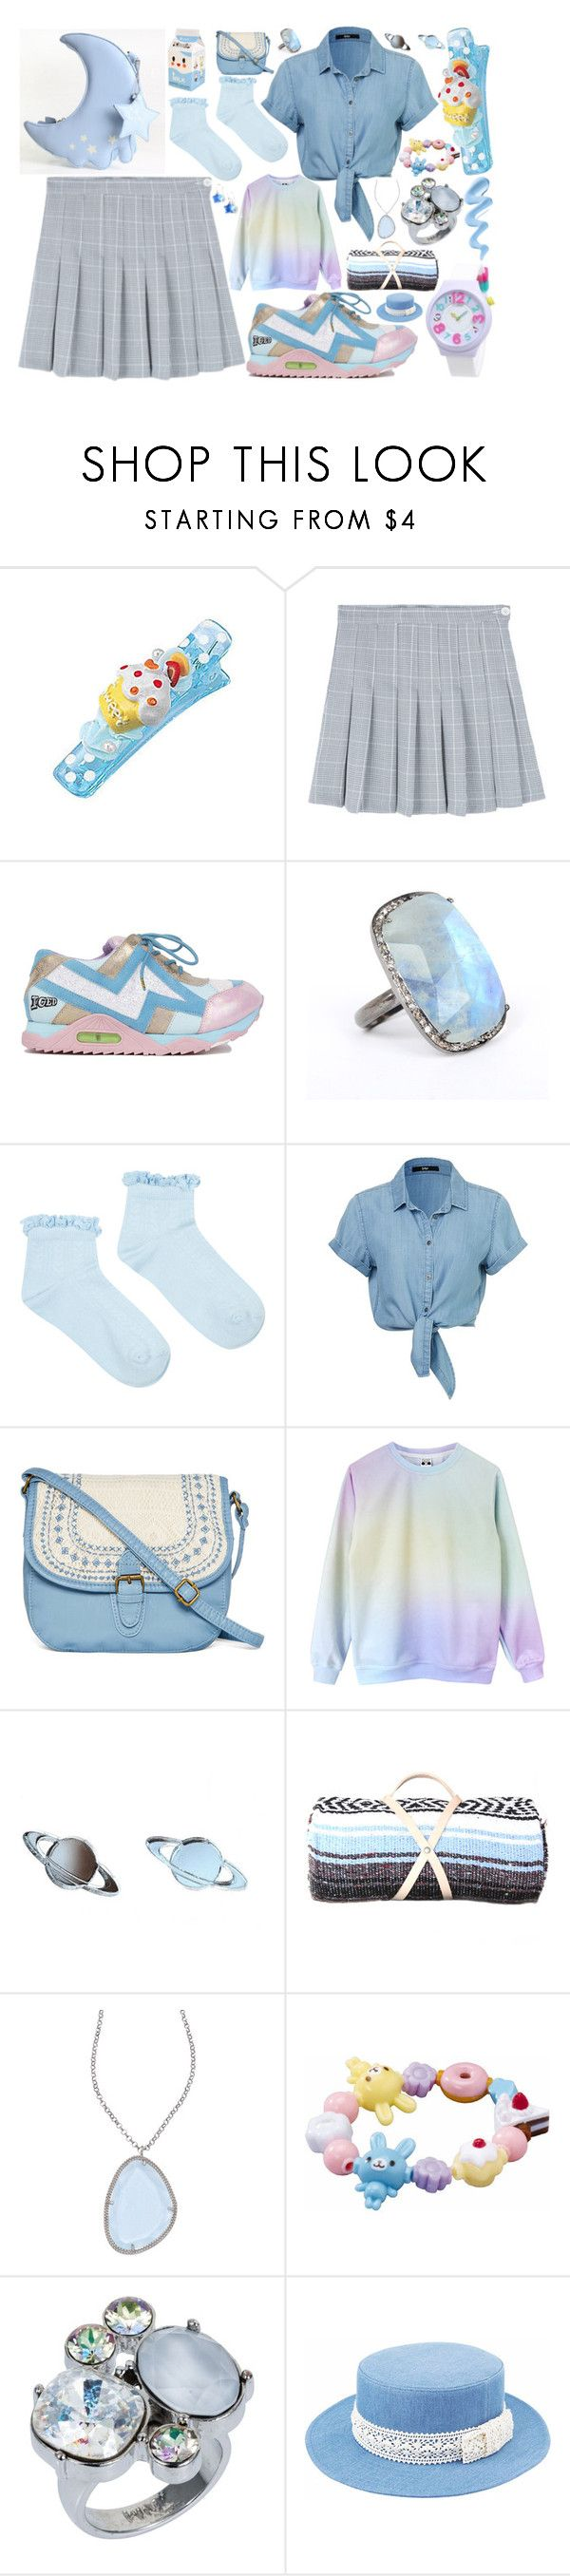 """""""Little Cupcake"""" by limerick-riddle ❤ liked on Polyvore featuring Irregular Choice, ADORNIA, Accessorize, T-shirt & Jeans, Elliott Chandler and Nadia Minkoff"""